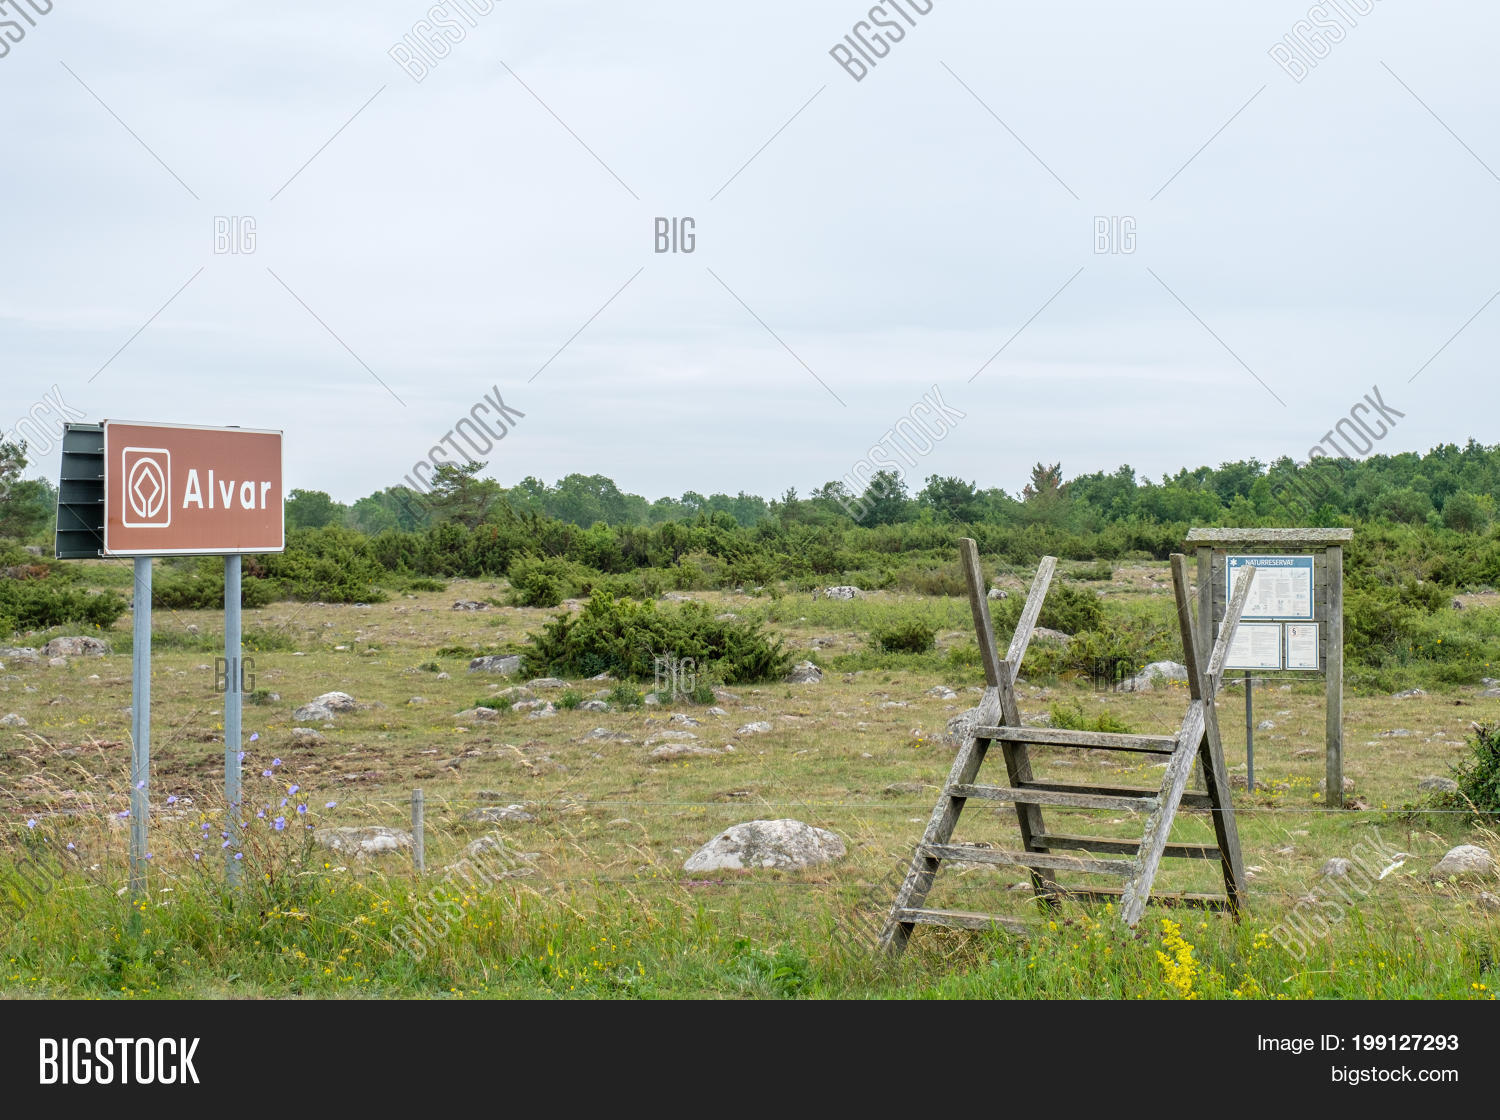 Alvar,Alvaret,Europe,Great,Heritage,July,Nordic,Oeland,Oland,Scandinavia,Scandinavian,Stora,Sweden,Swedish,UNESCO,World,agriculture,attraction,board,countryside,culture,fence,island,landscape,limestone,nature,notice,plain,rural,site,stile,stone,summer,tourism,tourist,traditional,travel,vacation,wall,Öland